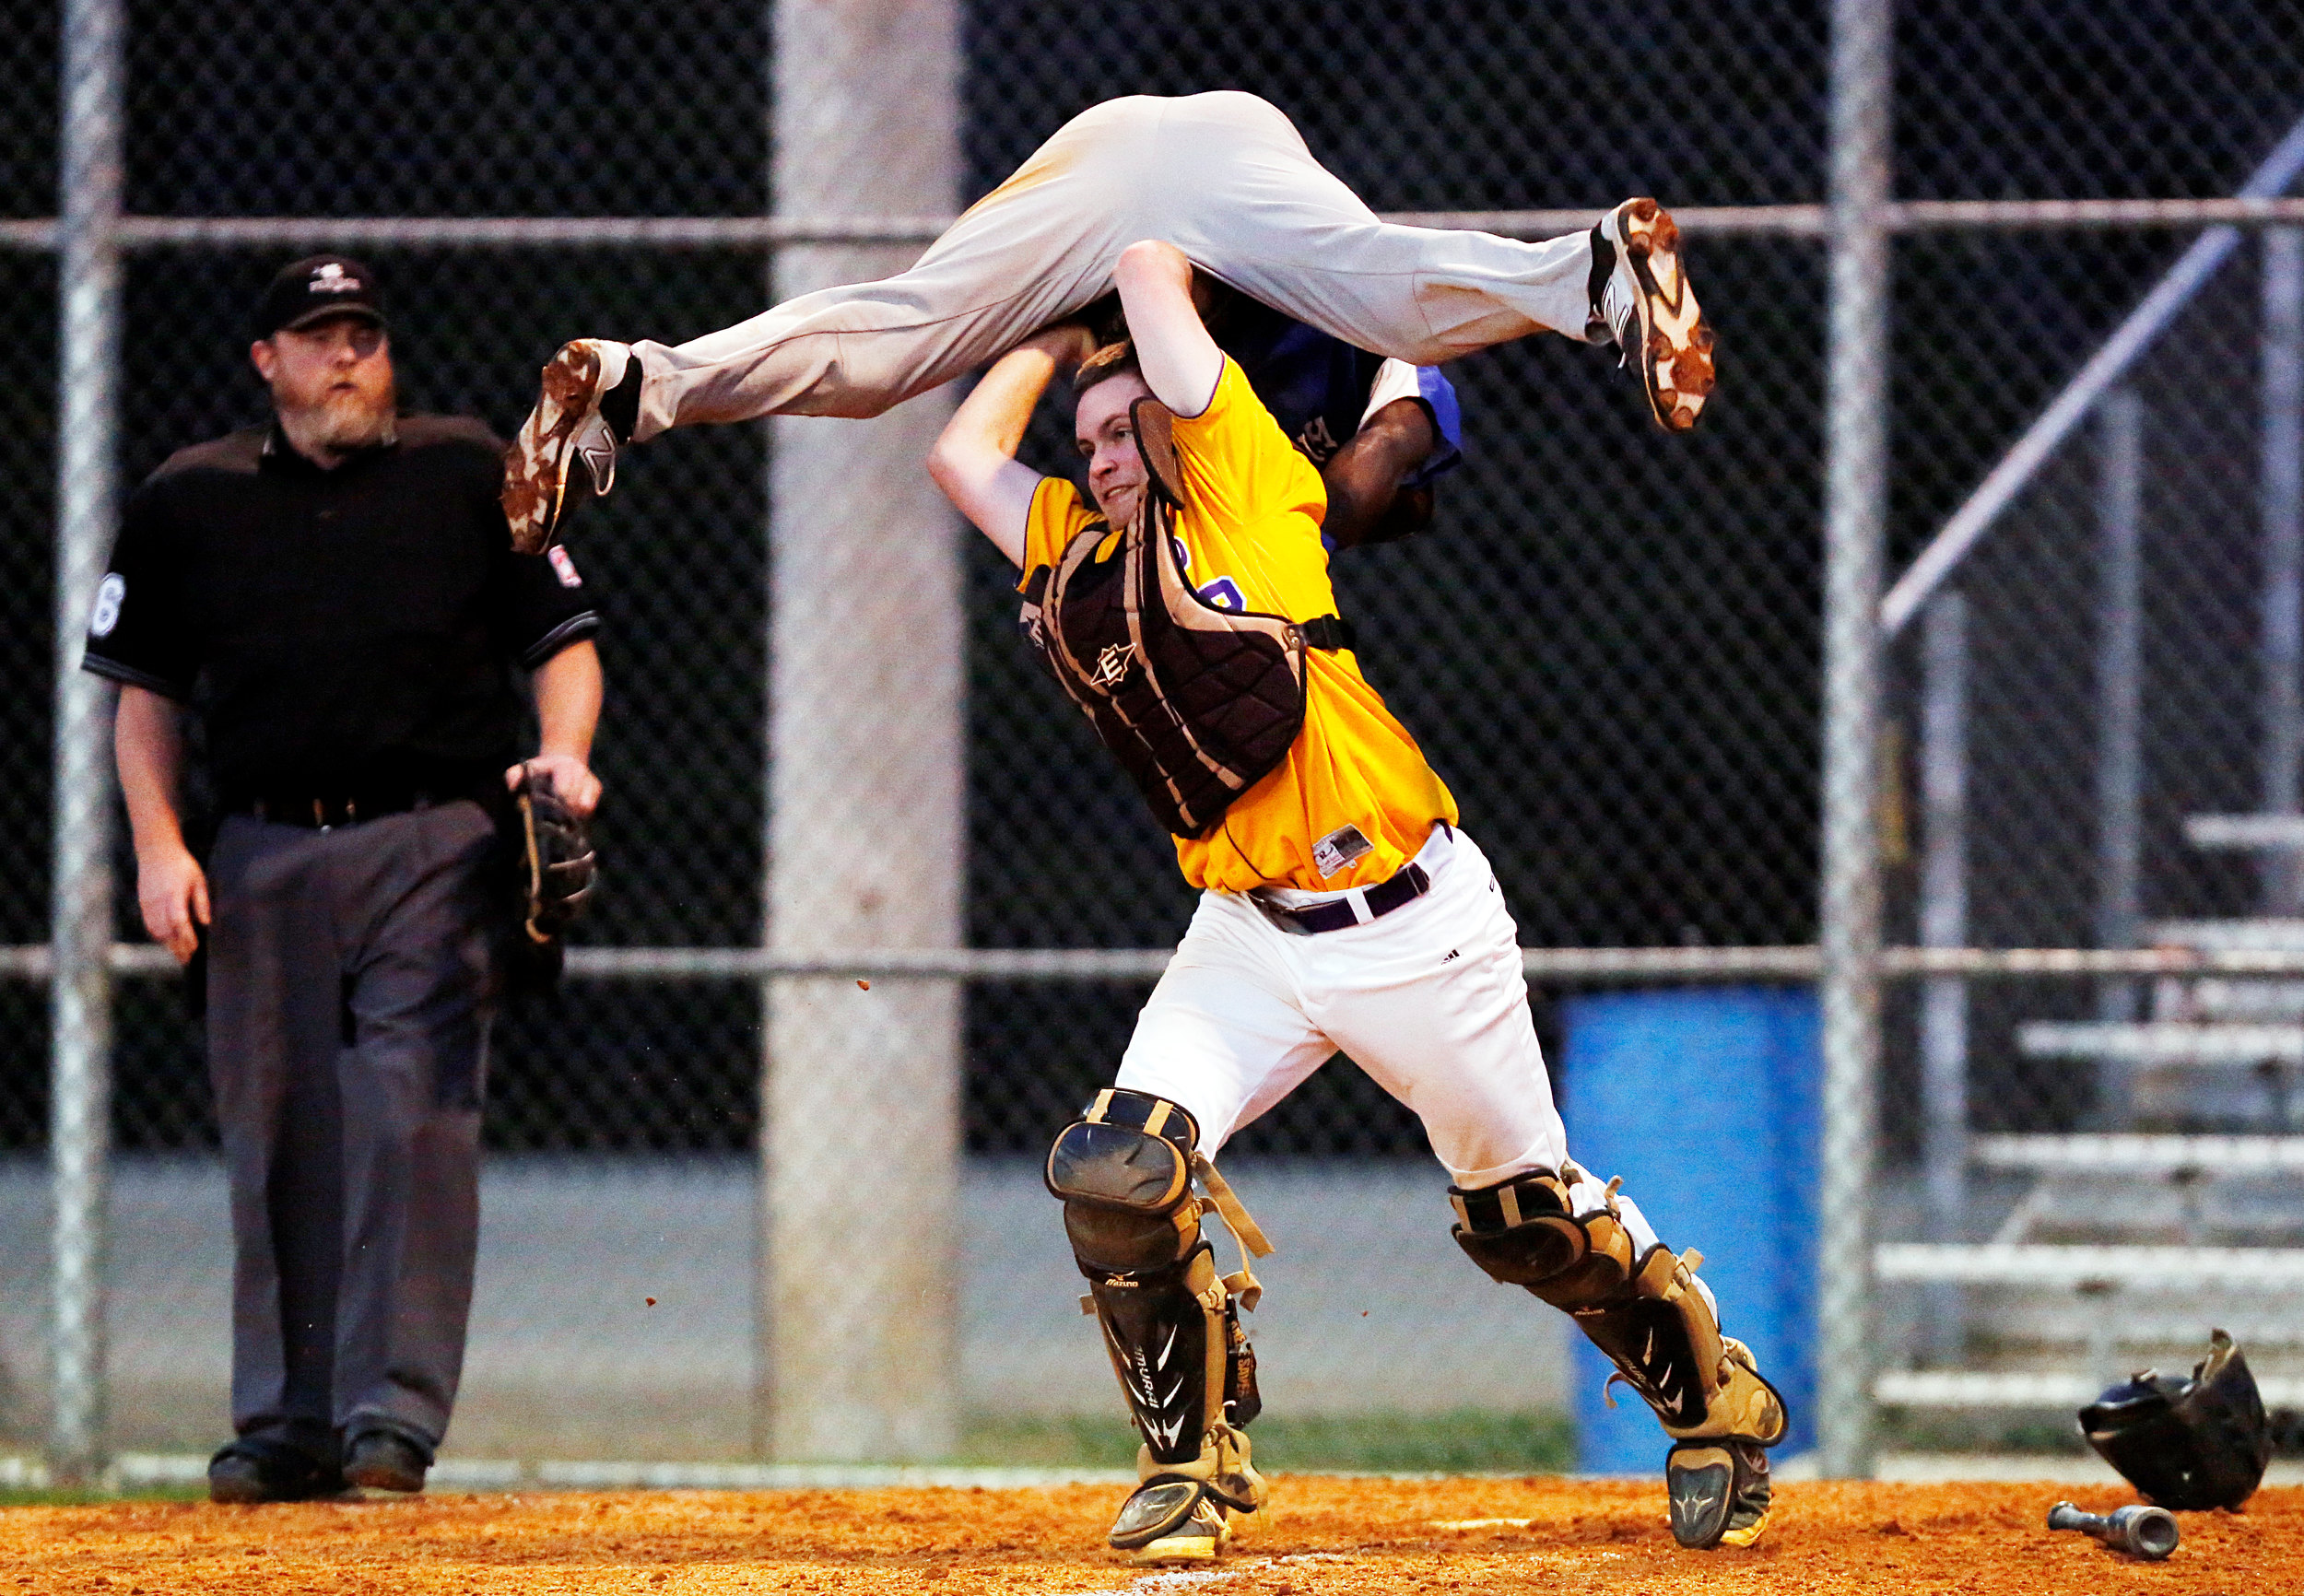 Lake City High School's Keenan Graham, top, is tagged out -- and upended -- by Wilson High School's Mason Park as he tries to hurdle his way to home plate. Lake City took on Wilson on Tuesday night, March 17, 2015, at Wilson High School. Lake City won, 5-2.